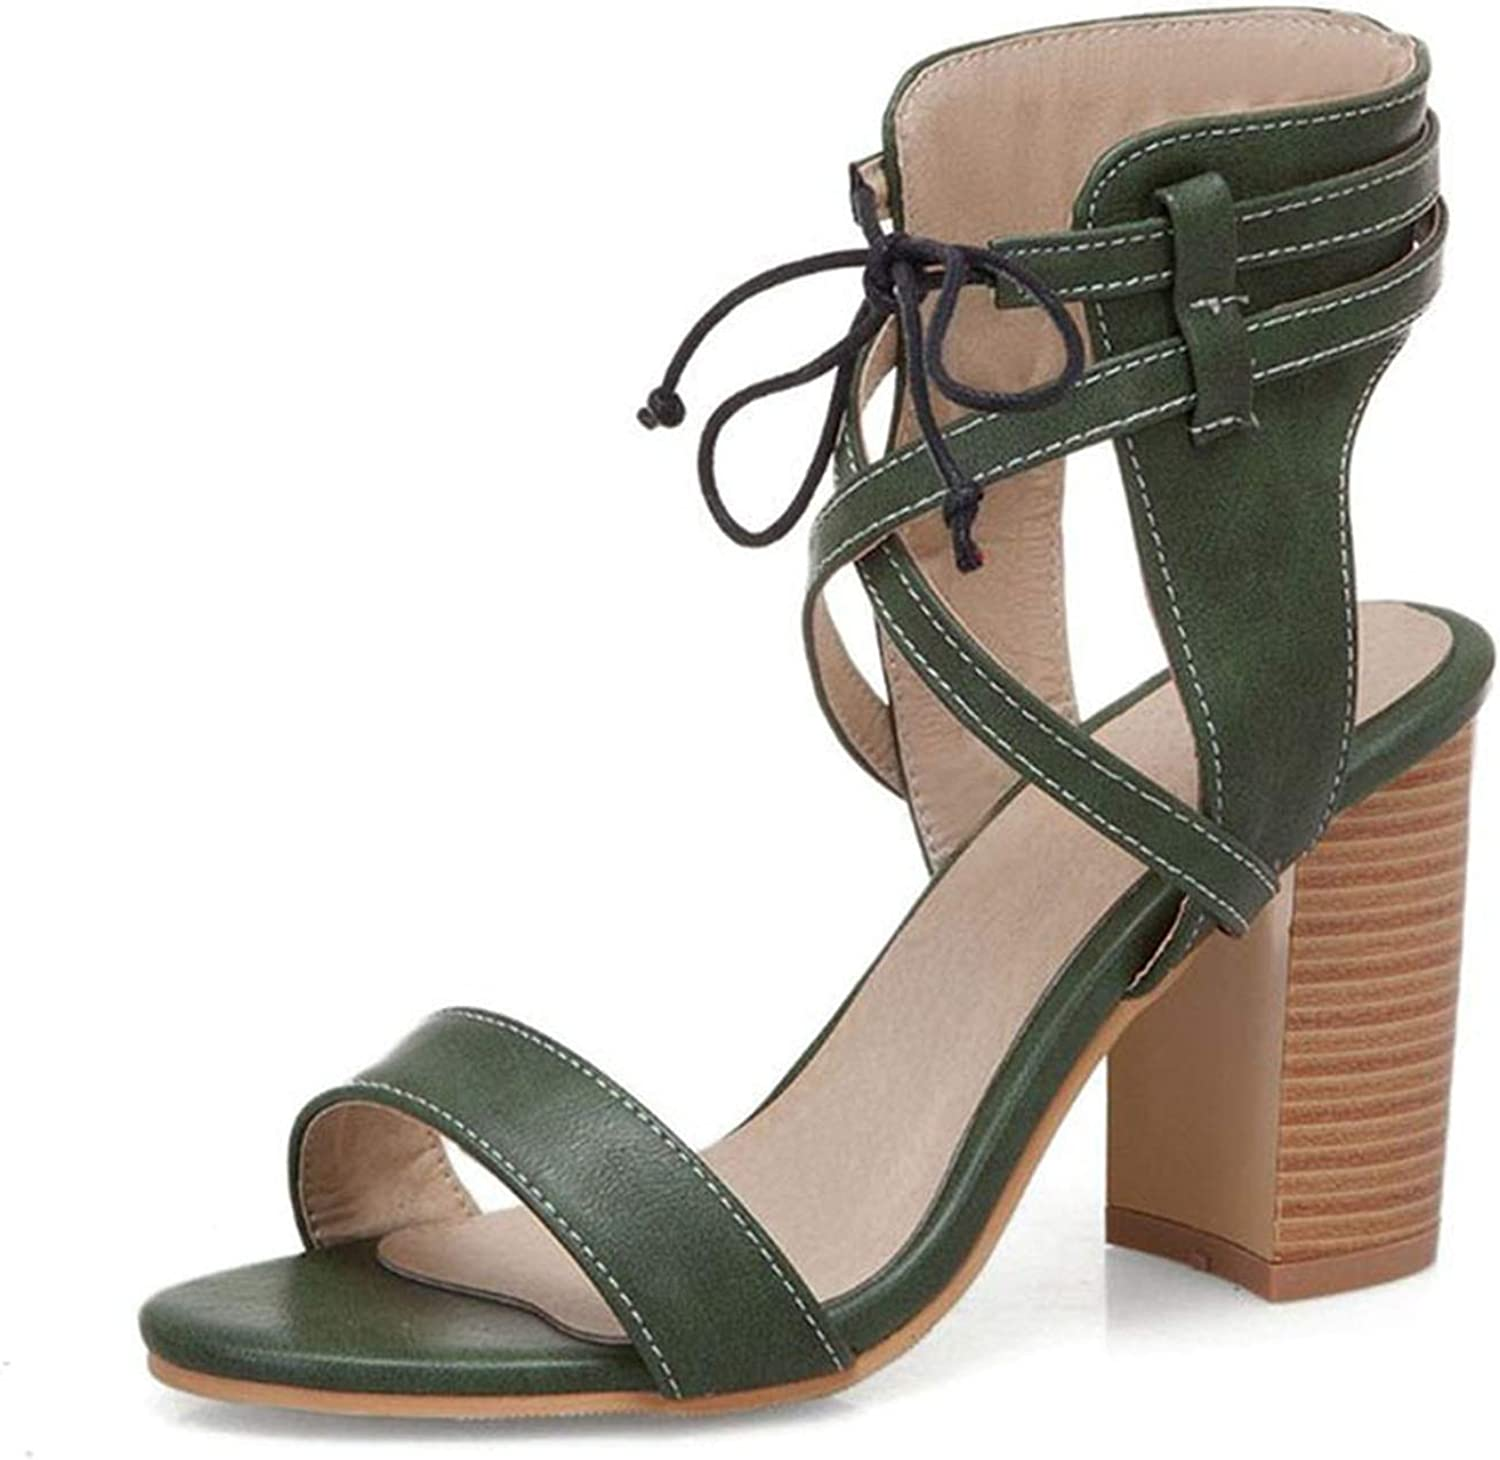 Fairly Gladiator High Heel Cross Strap Club Sexy Party shoes Daily,Green,7